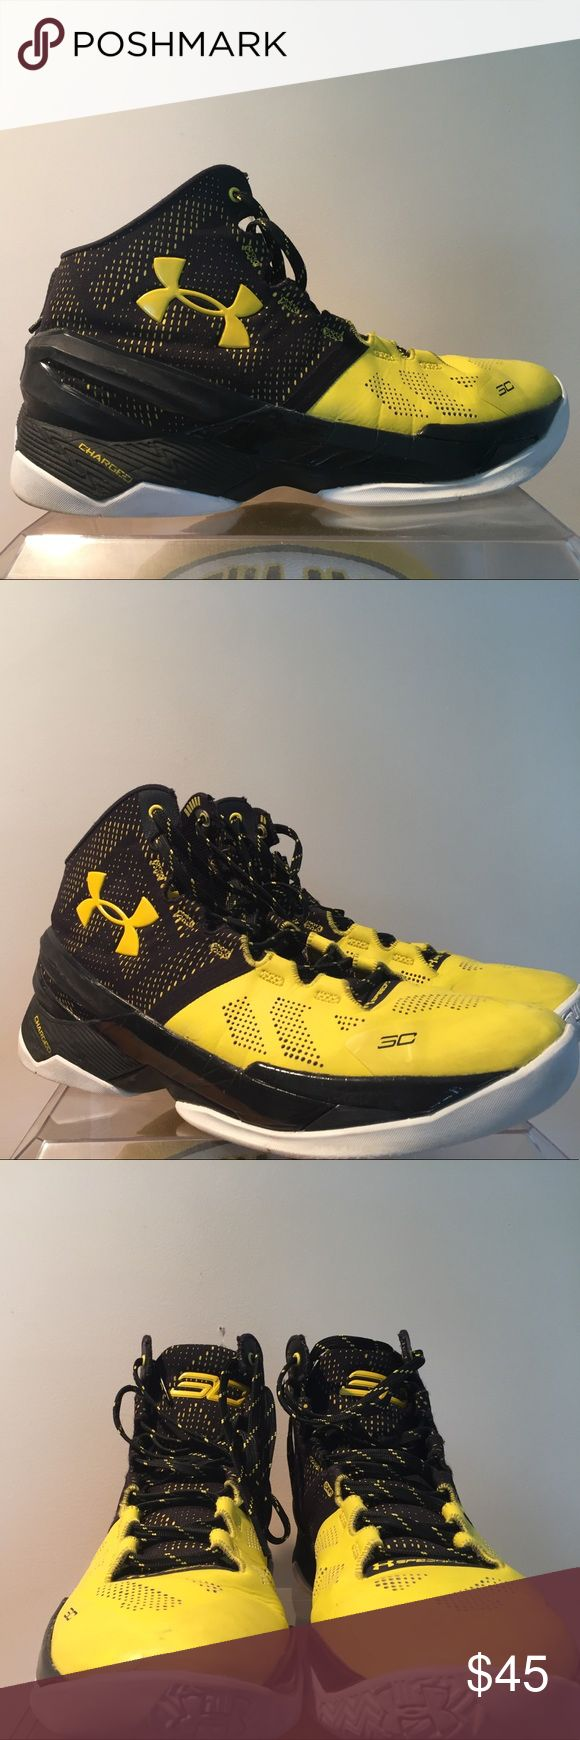 Stephen Curry 2s Black/Yellow Under Armour Good condition! Only noticeable flaw is some paint chipping on the under armor sign on left shoe. Not Jordan but listing as so for exposure. Jordan Shoes Athletic Shoes